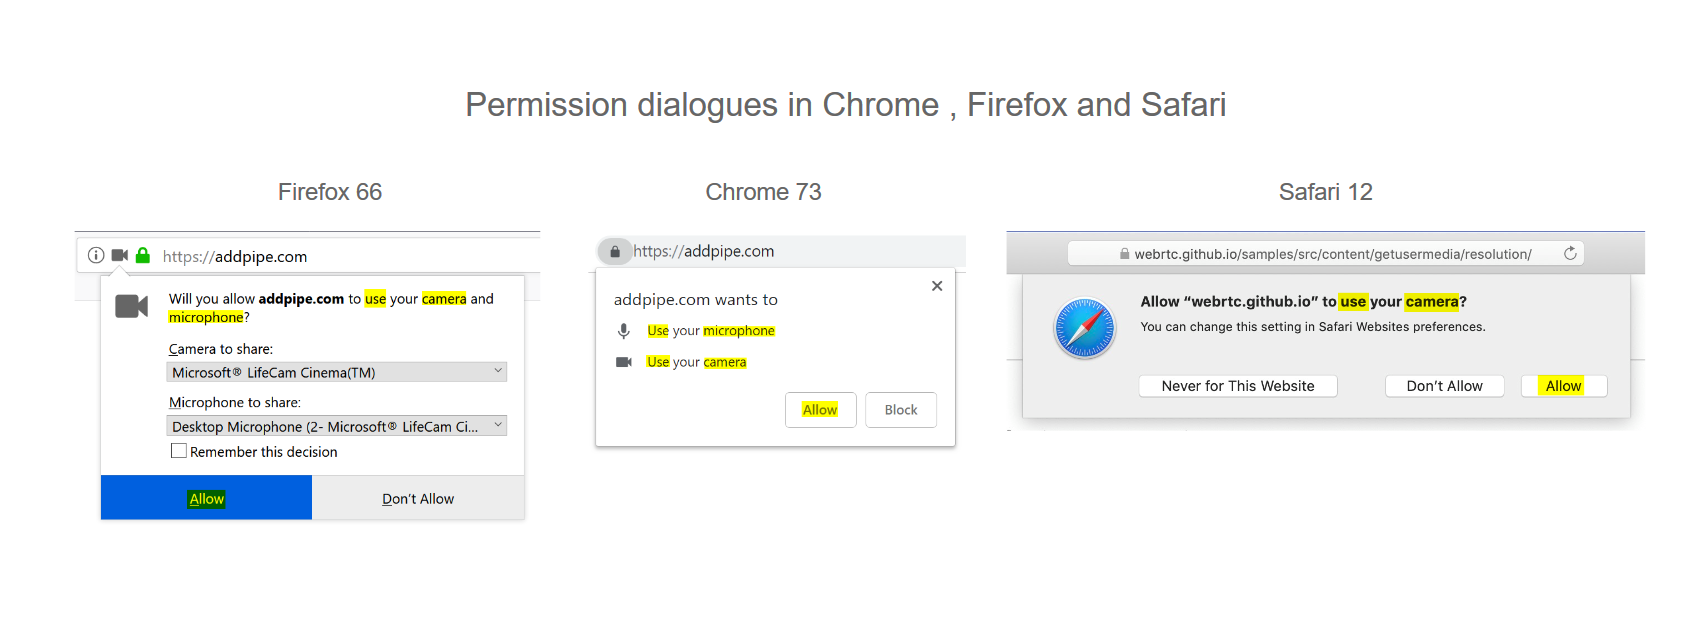 getUserMedia() permission dialogues in Chrome Firefox and Safari